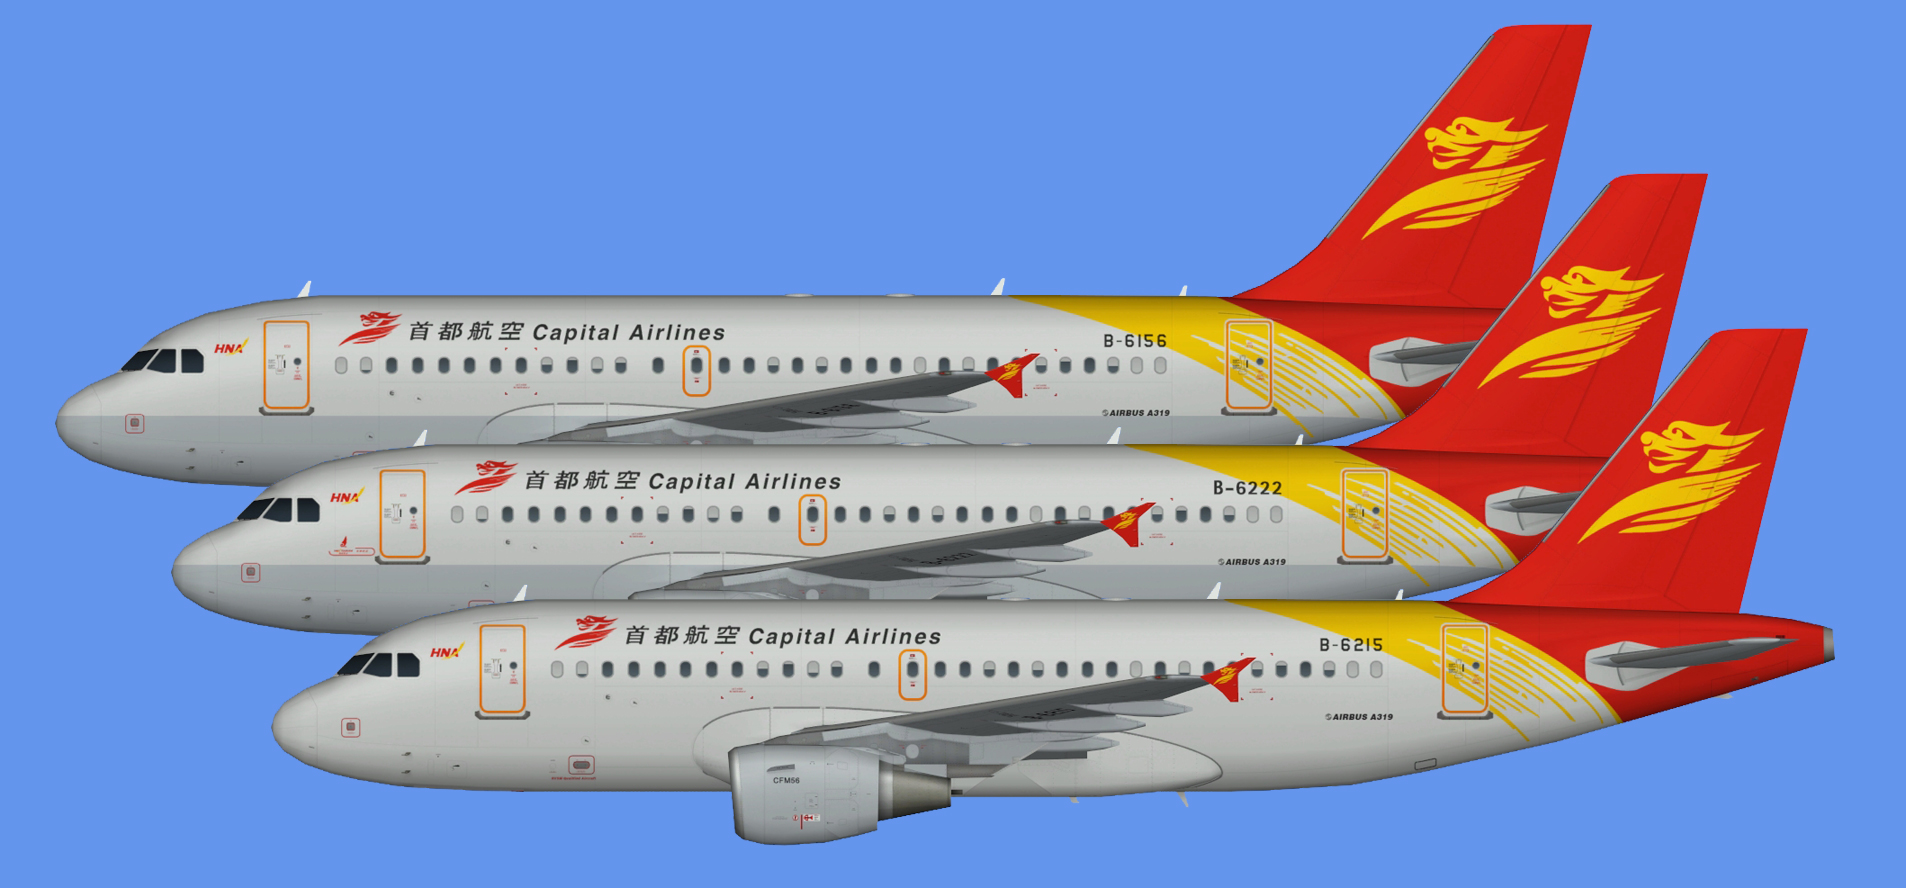 Capital Airlines Airbus A319 CFM